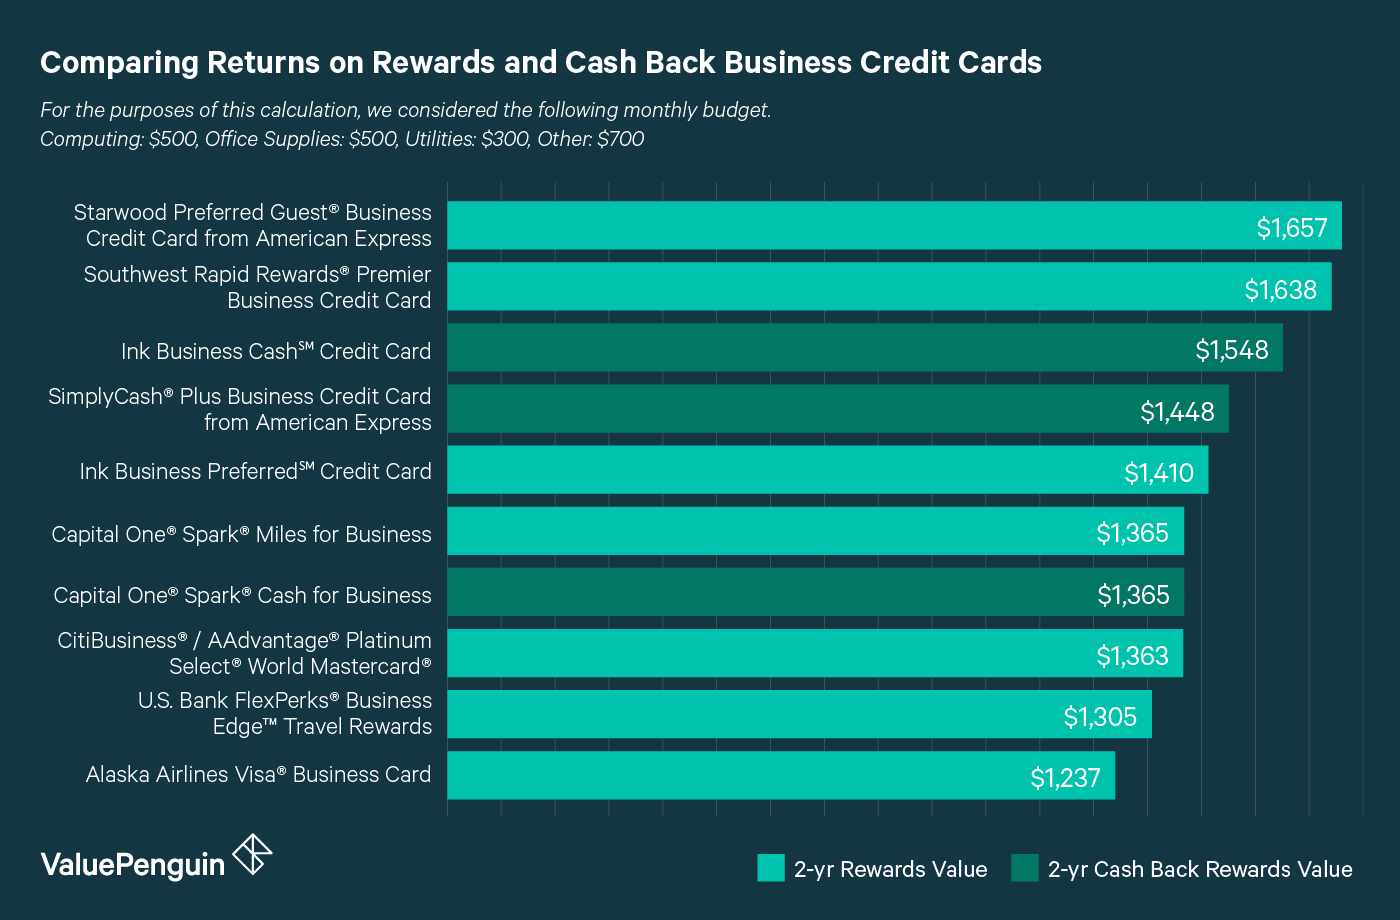 Best Small Business Credit Cards of 2018 - ValuePenguin